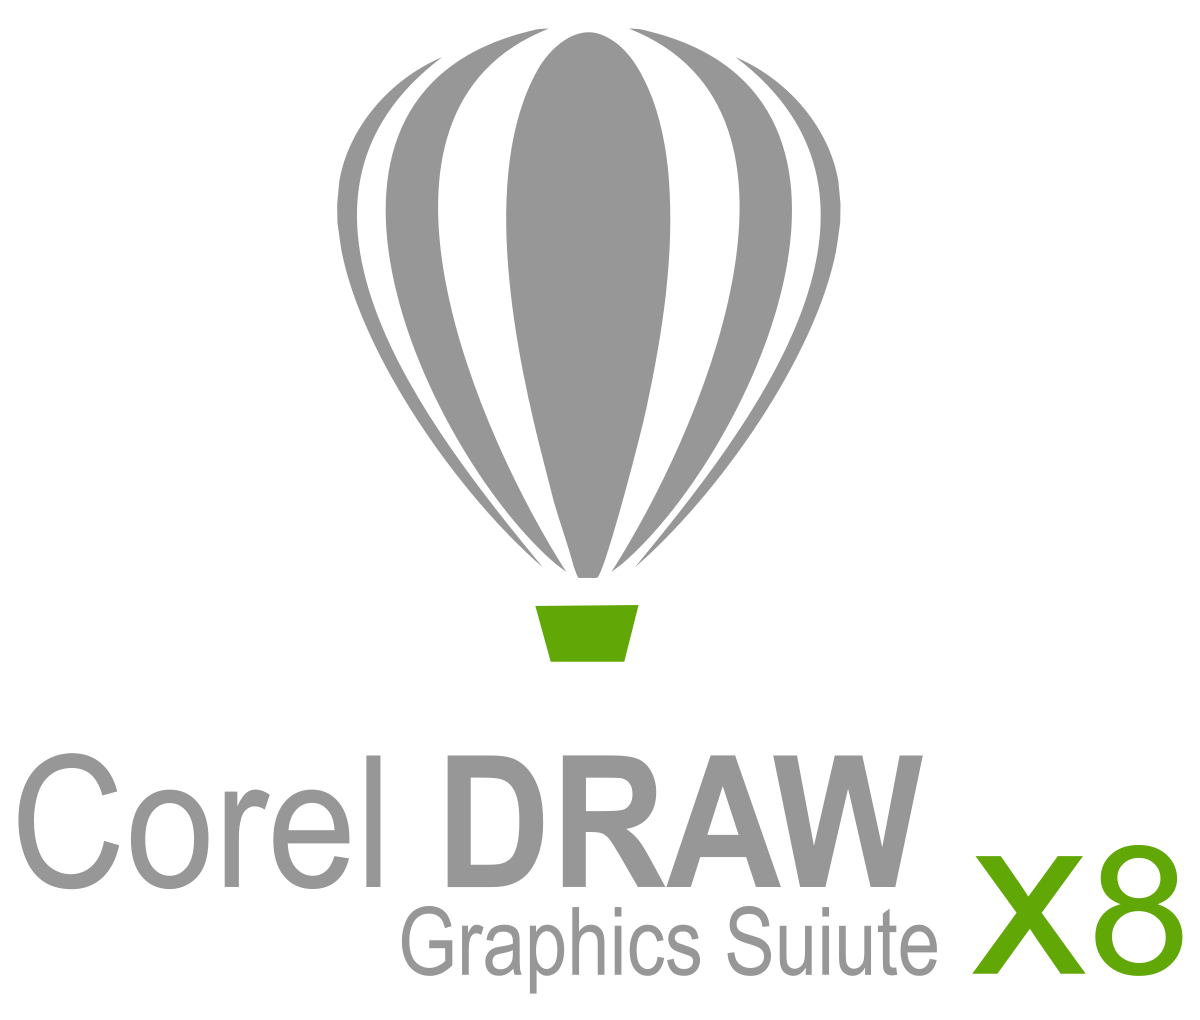 Polygons drawing coreldraw. Wikipedia